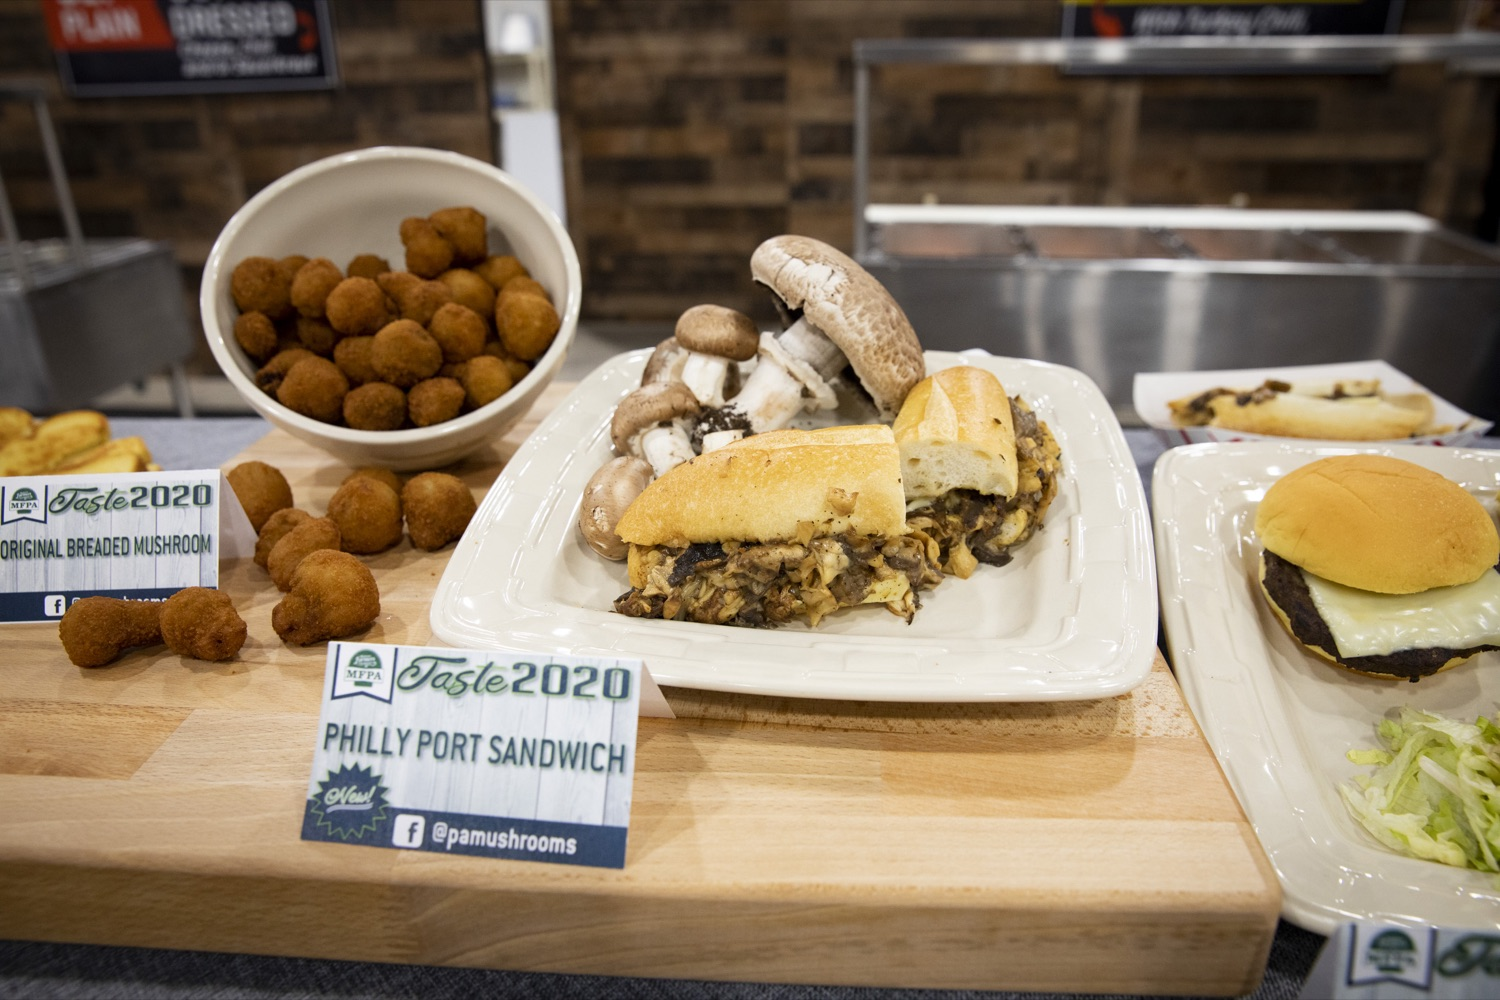 "<a href=""https://filesource.wostreaming.net/commonwealthofpa/photo/17658_FARM_SHOW_FIRST_TASTE_CZ_05.JPG"" target=""_blank"">⇣ Download Photo<br></a>The Mushroom Farmers of Pennsylvania introduce their Philly port sandwich at the Pennsylvania Farm Show Food Court in Harrisburg on January 2, 2020."